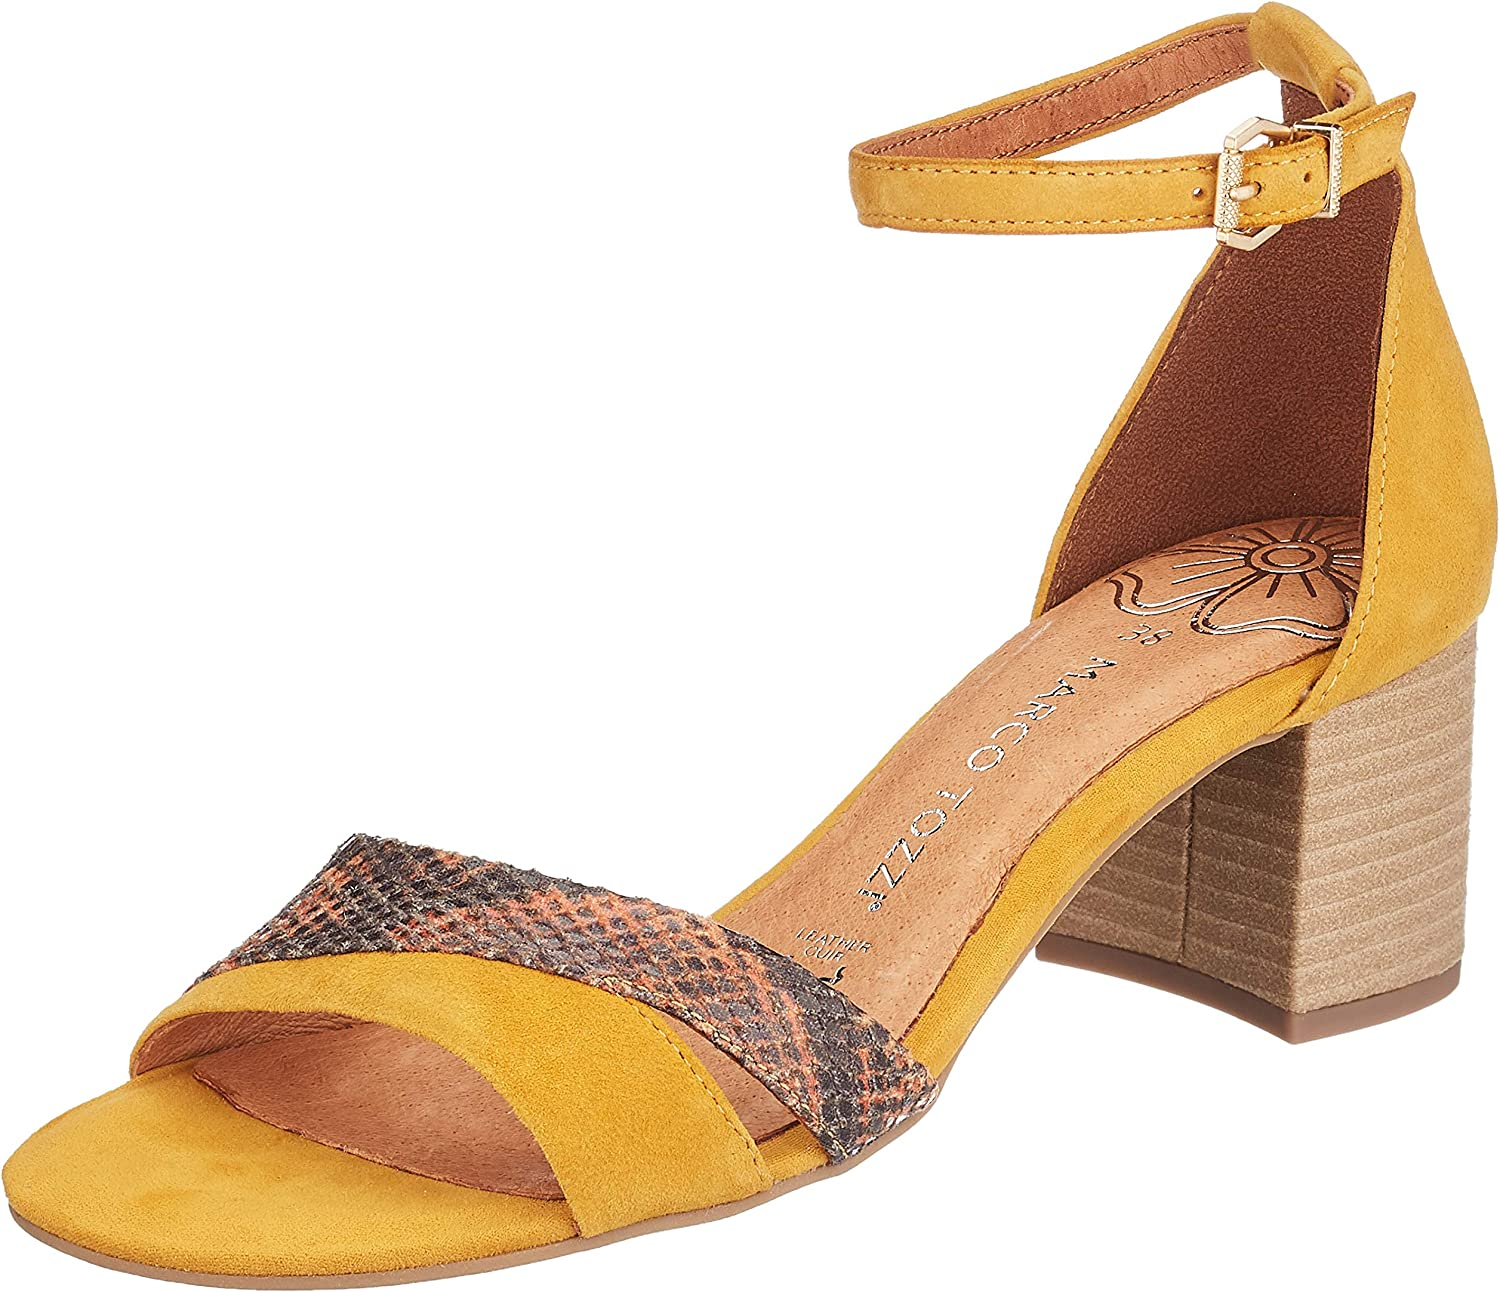 Marco Tozzi Special price Direct sale of manufacturer for a limited time Women's Ankle Strap Sandals